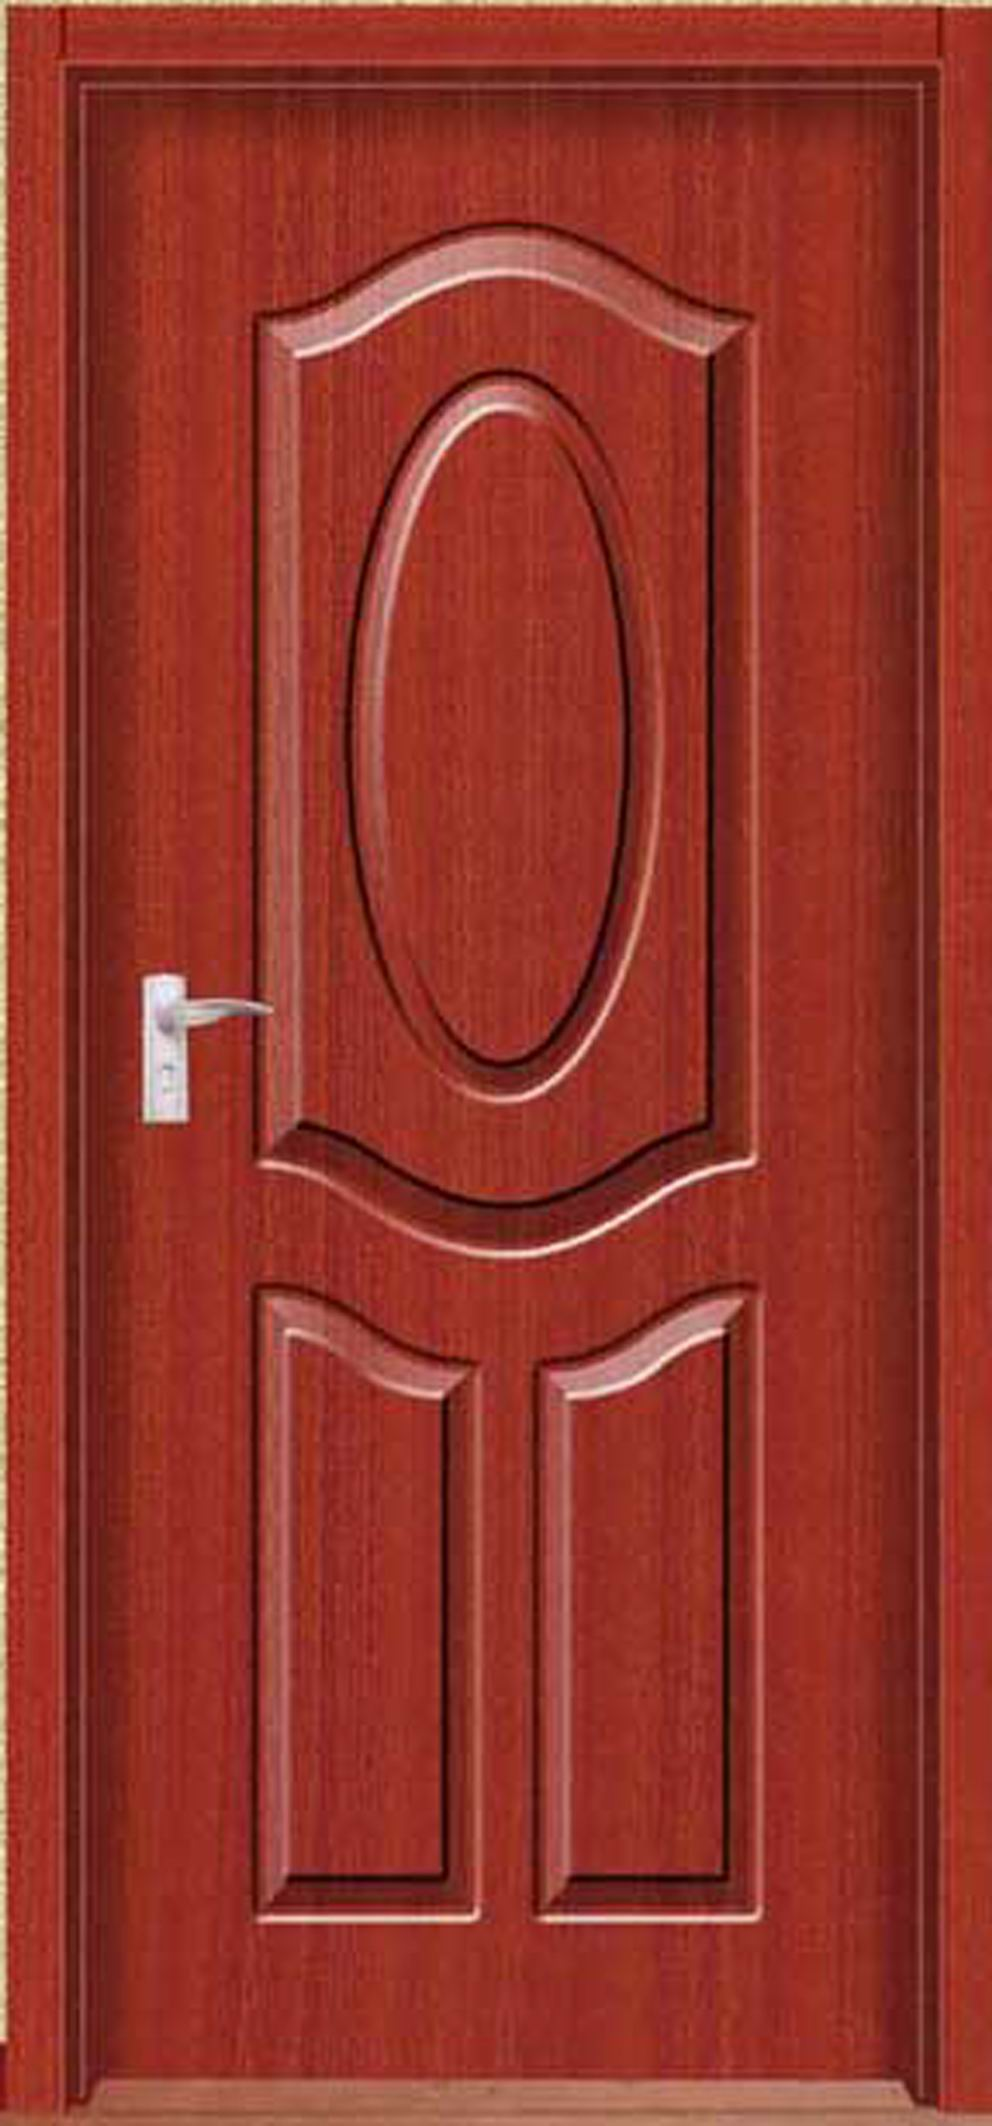 Le Meilleur The Meaning And Symbolism Of The Word Door Ce Mois Ci